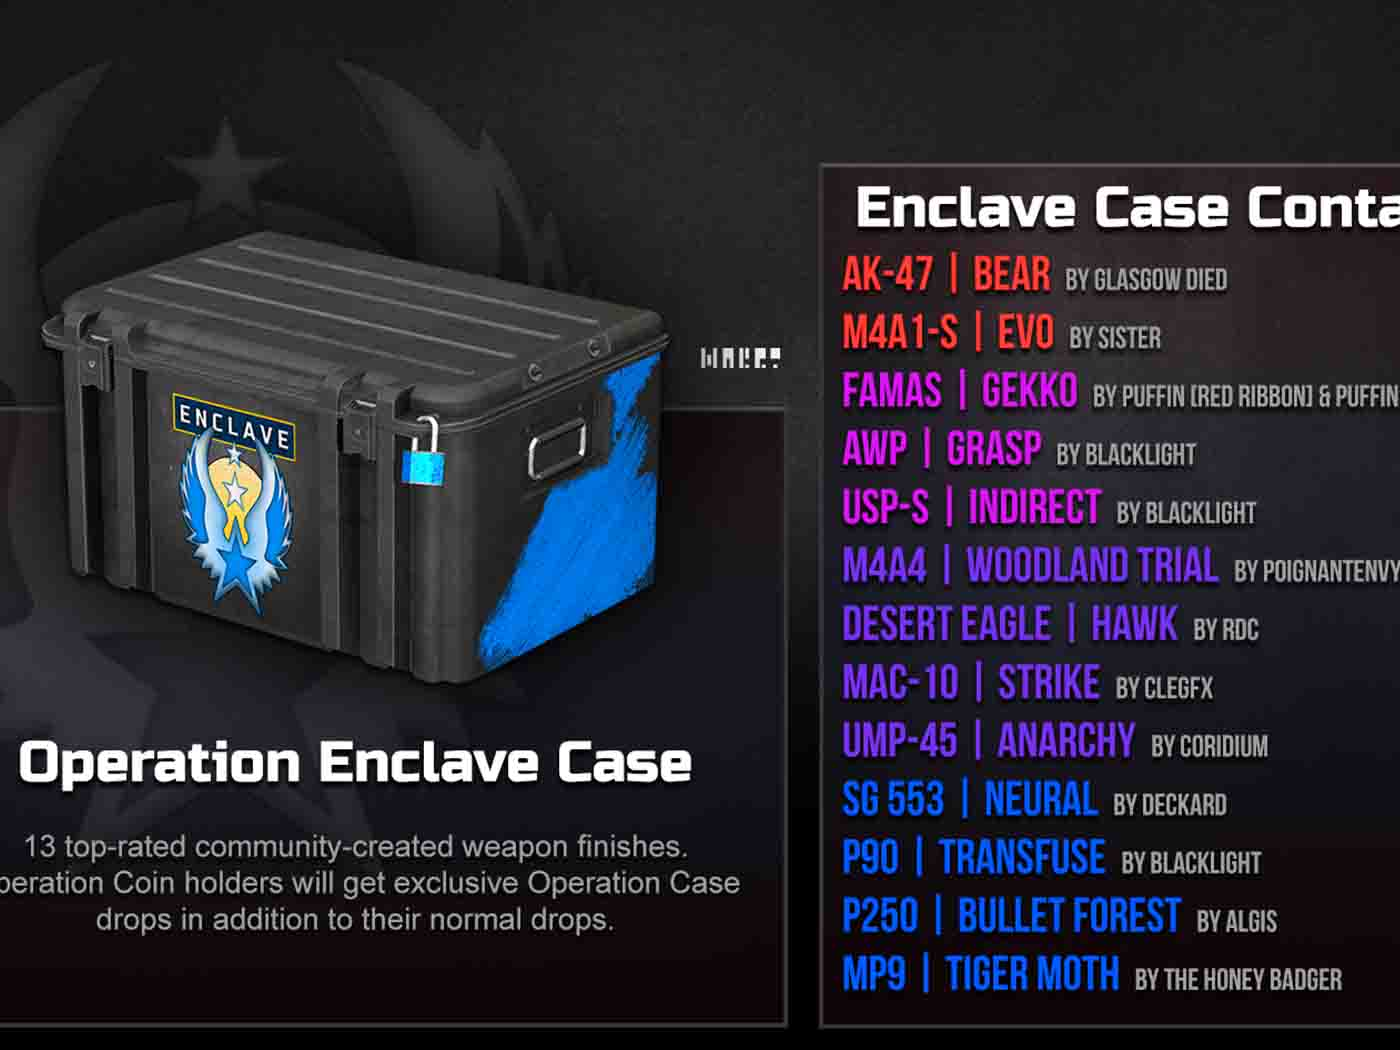 Новый кейс в CSGO - Enclave case contains